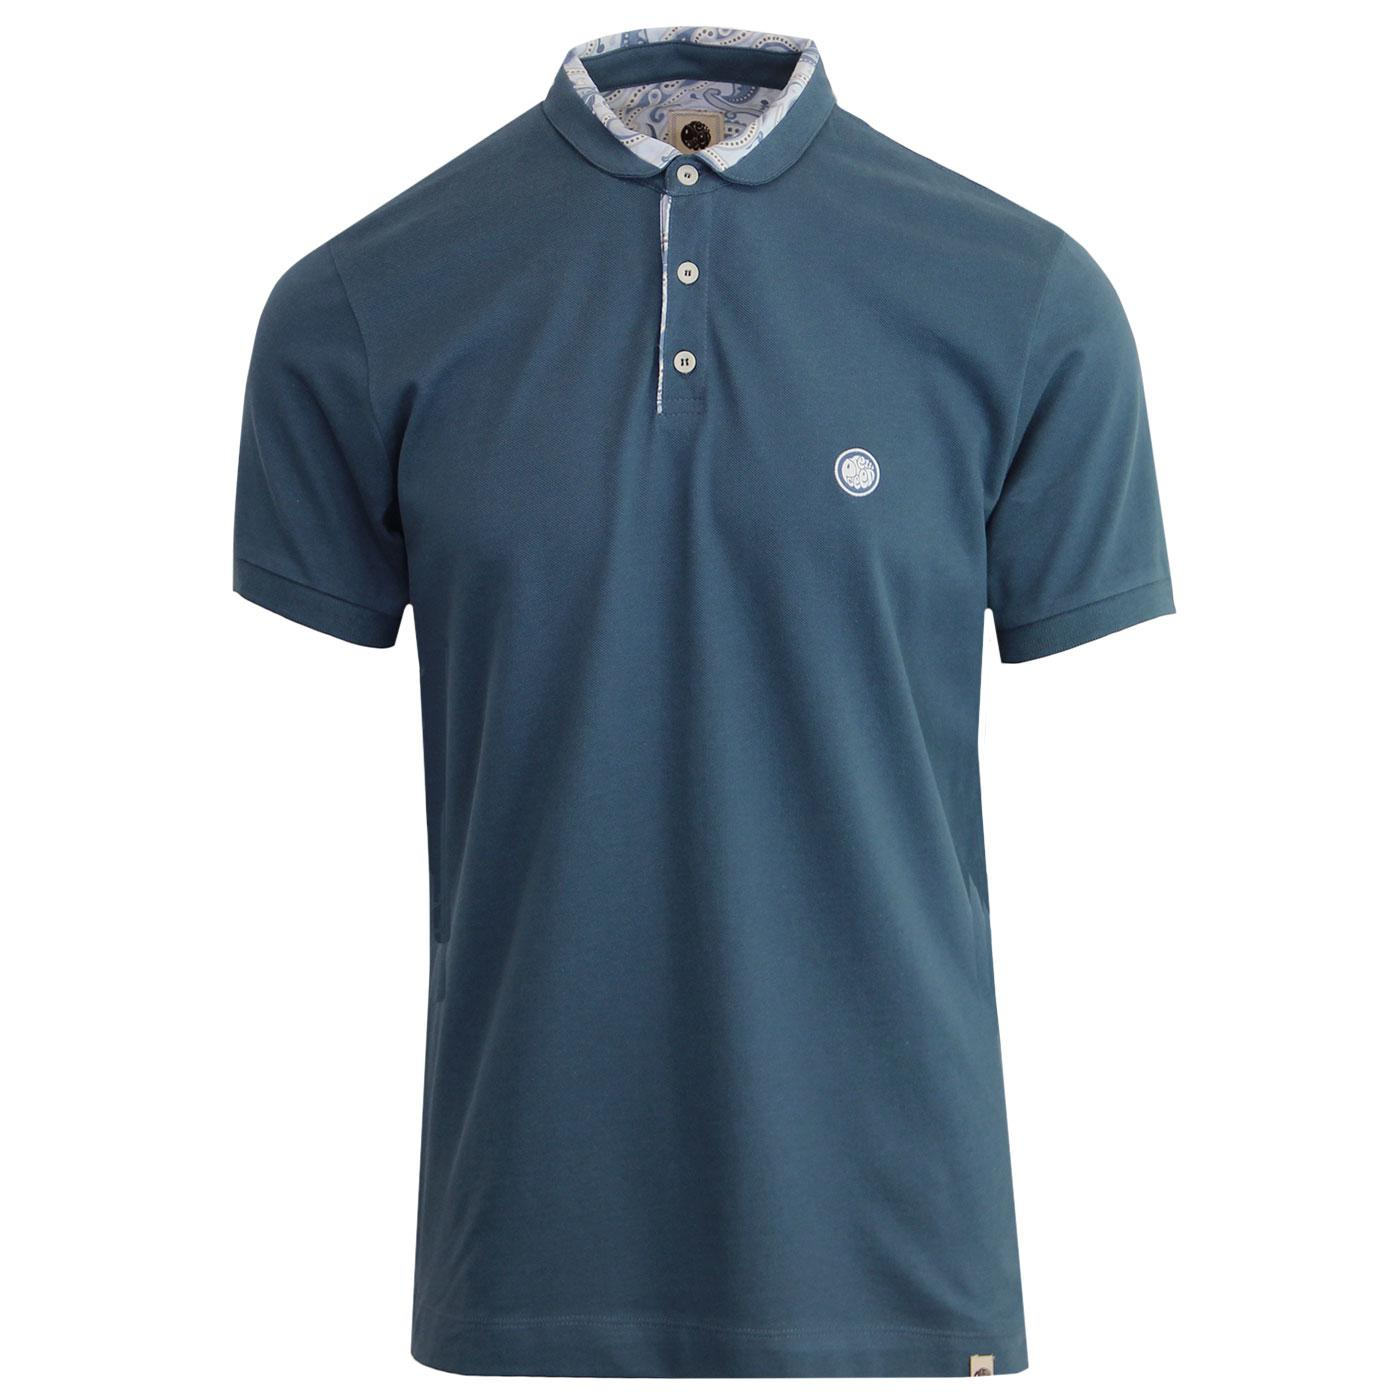 Carver PRETTY GREEN Paisley Trim Pique Polo Top B